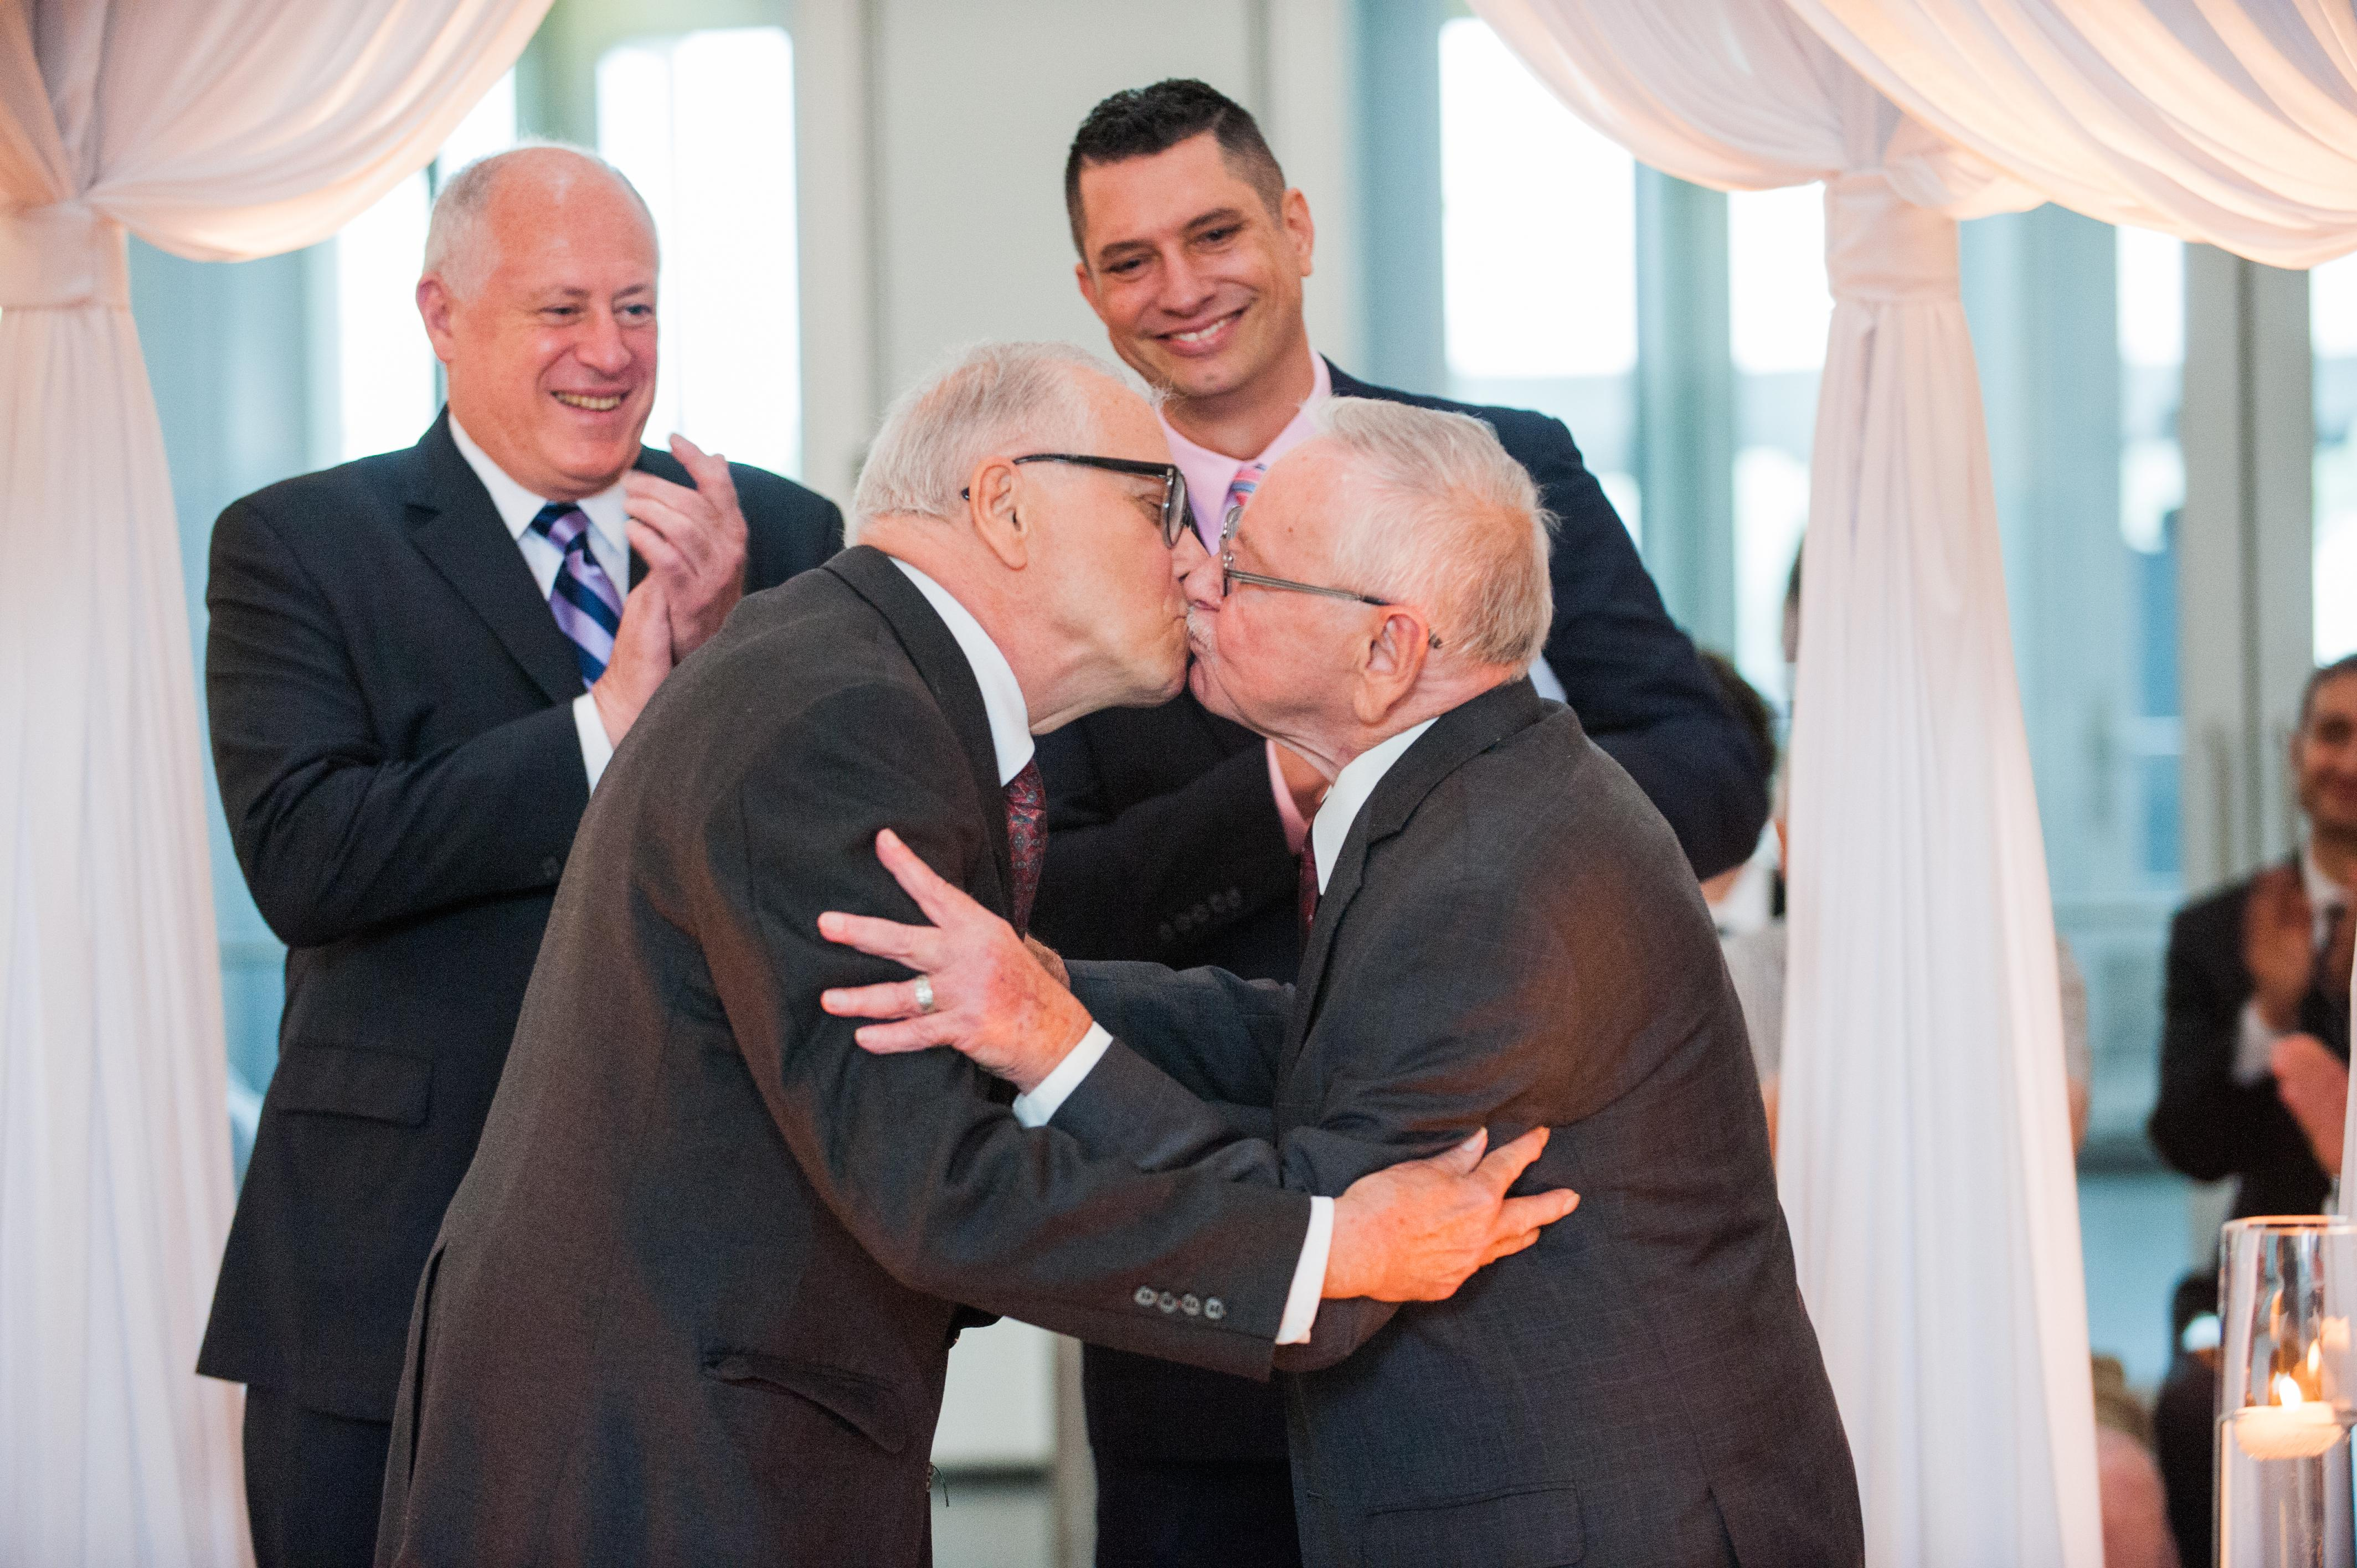 Two elderly men wearing suits embrace in a kiss while two other men look on smiling and clapping.